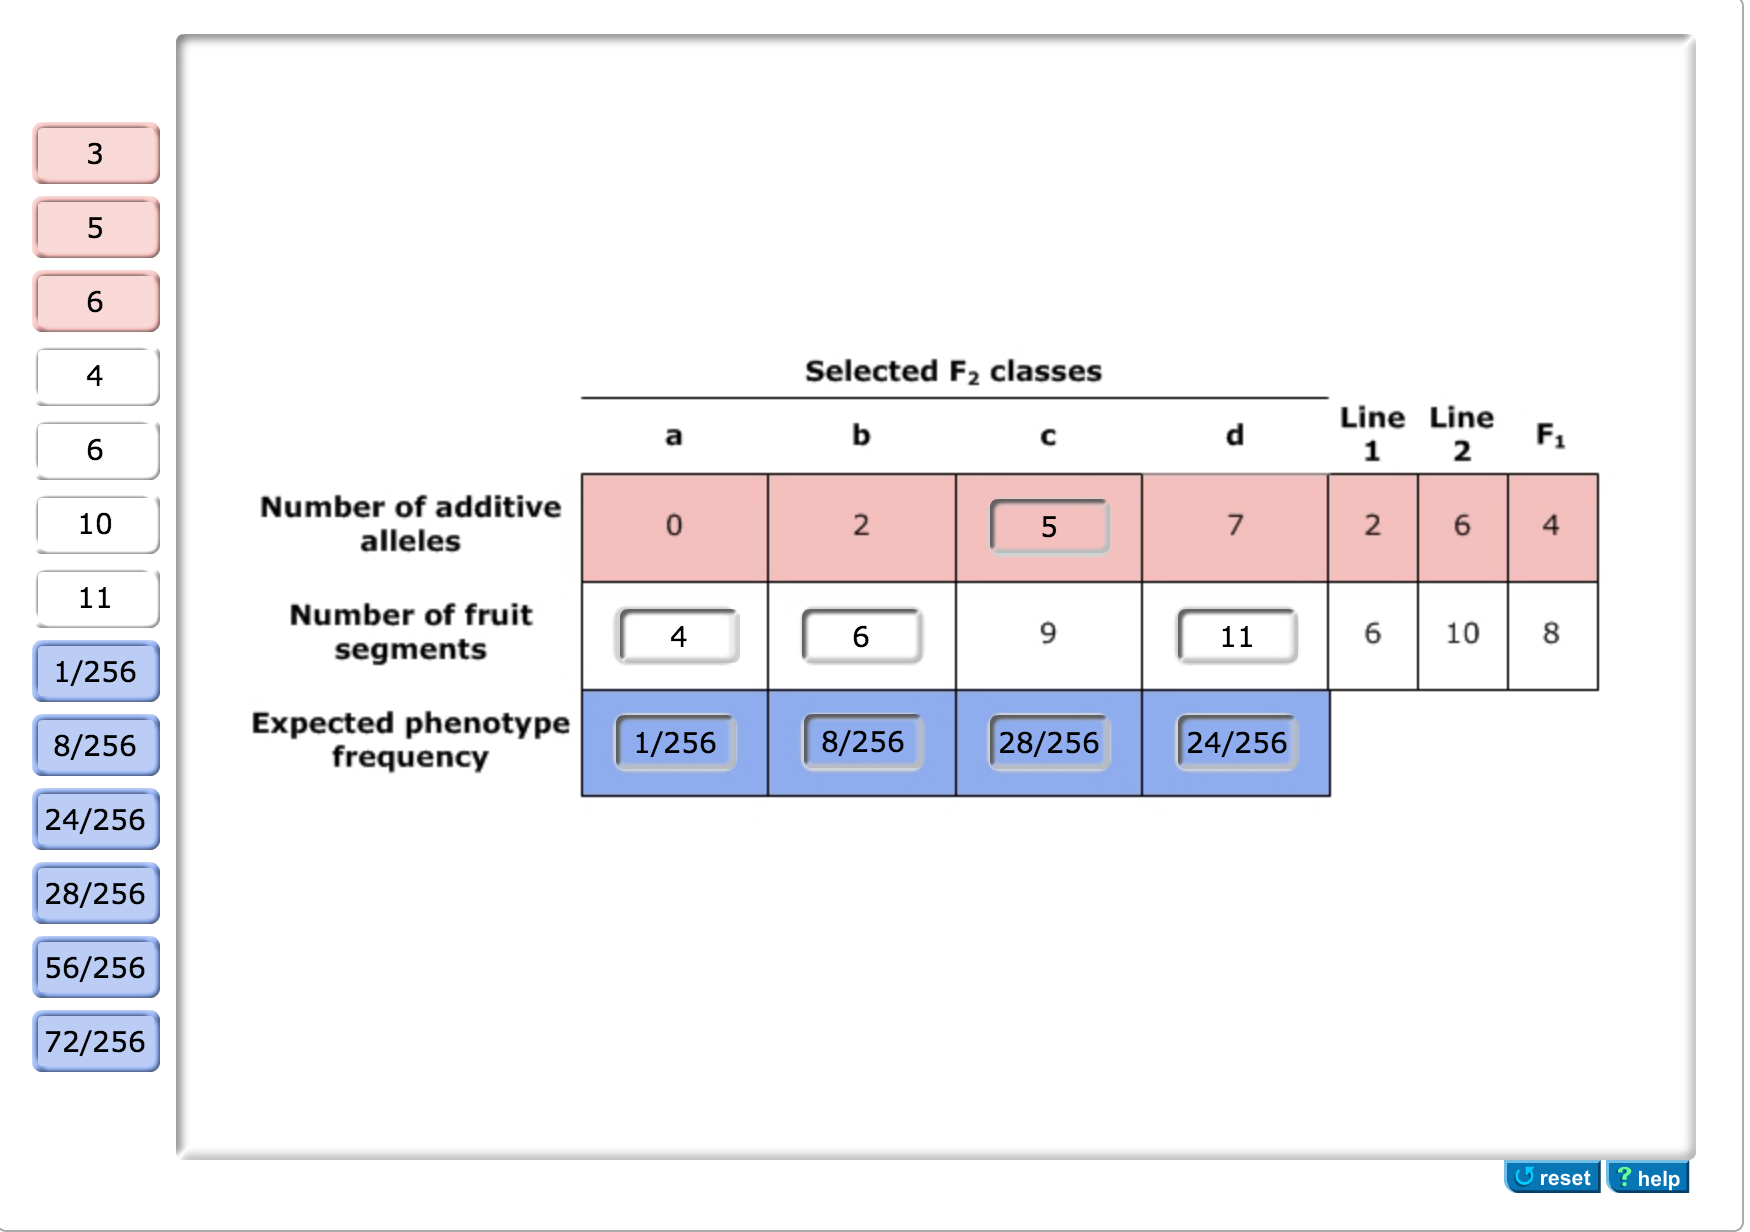 an analysis of the formation of pedigree in a family Patient information two families with an autosomal dominant inheritance pattern of ad were analyzed, and a pedigree chart is shown in figure 1the 3 patients with ad sequenced in family 1 had reported ages at onset of 56, 70–75, and 71–77 years.